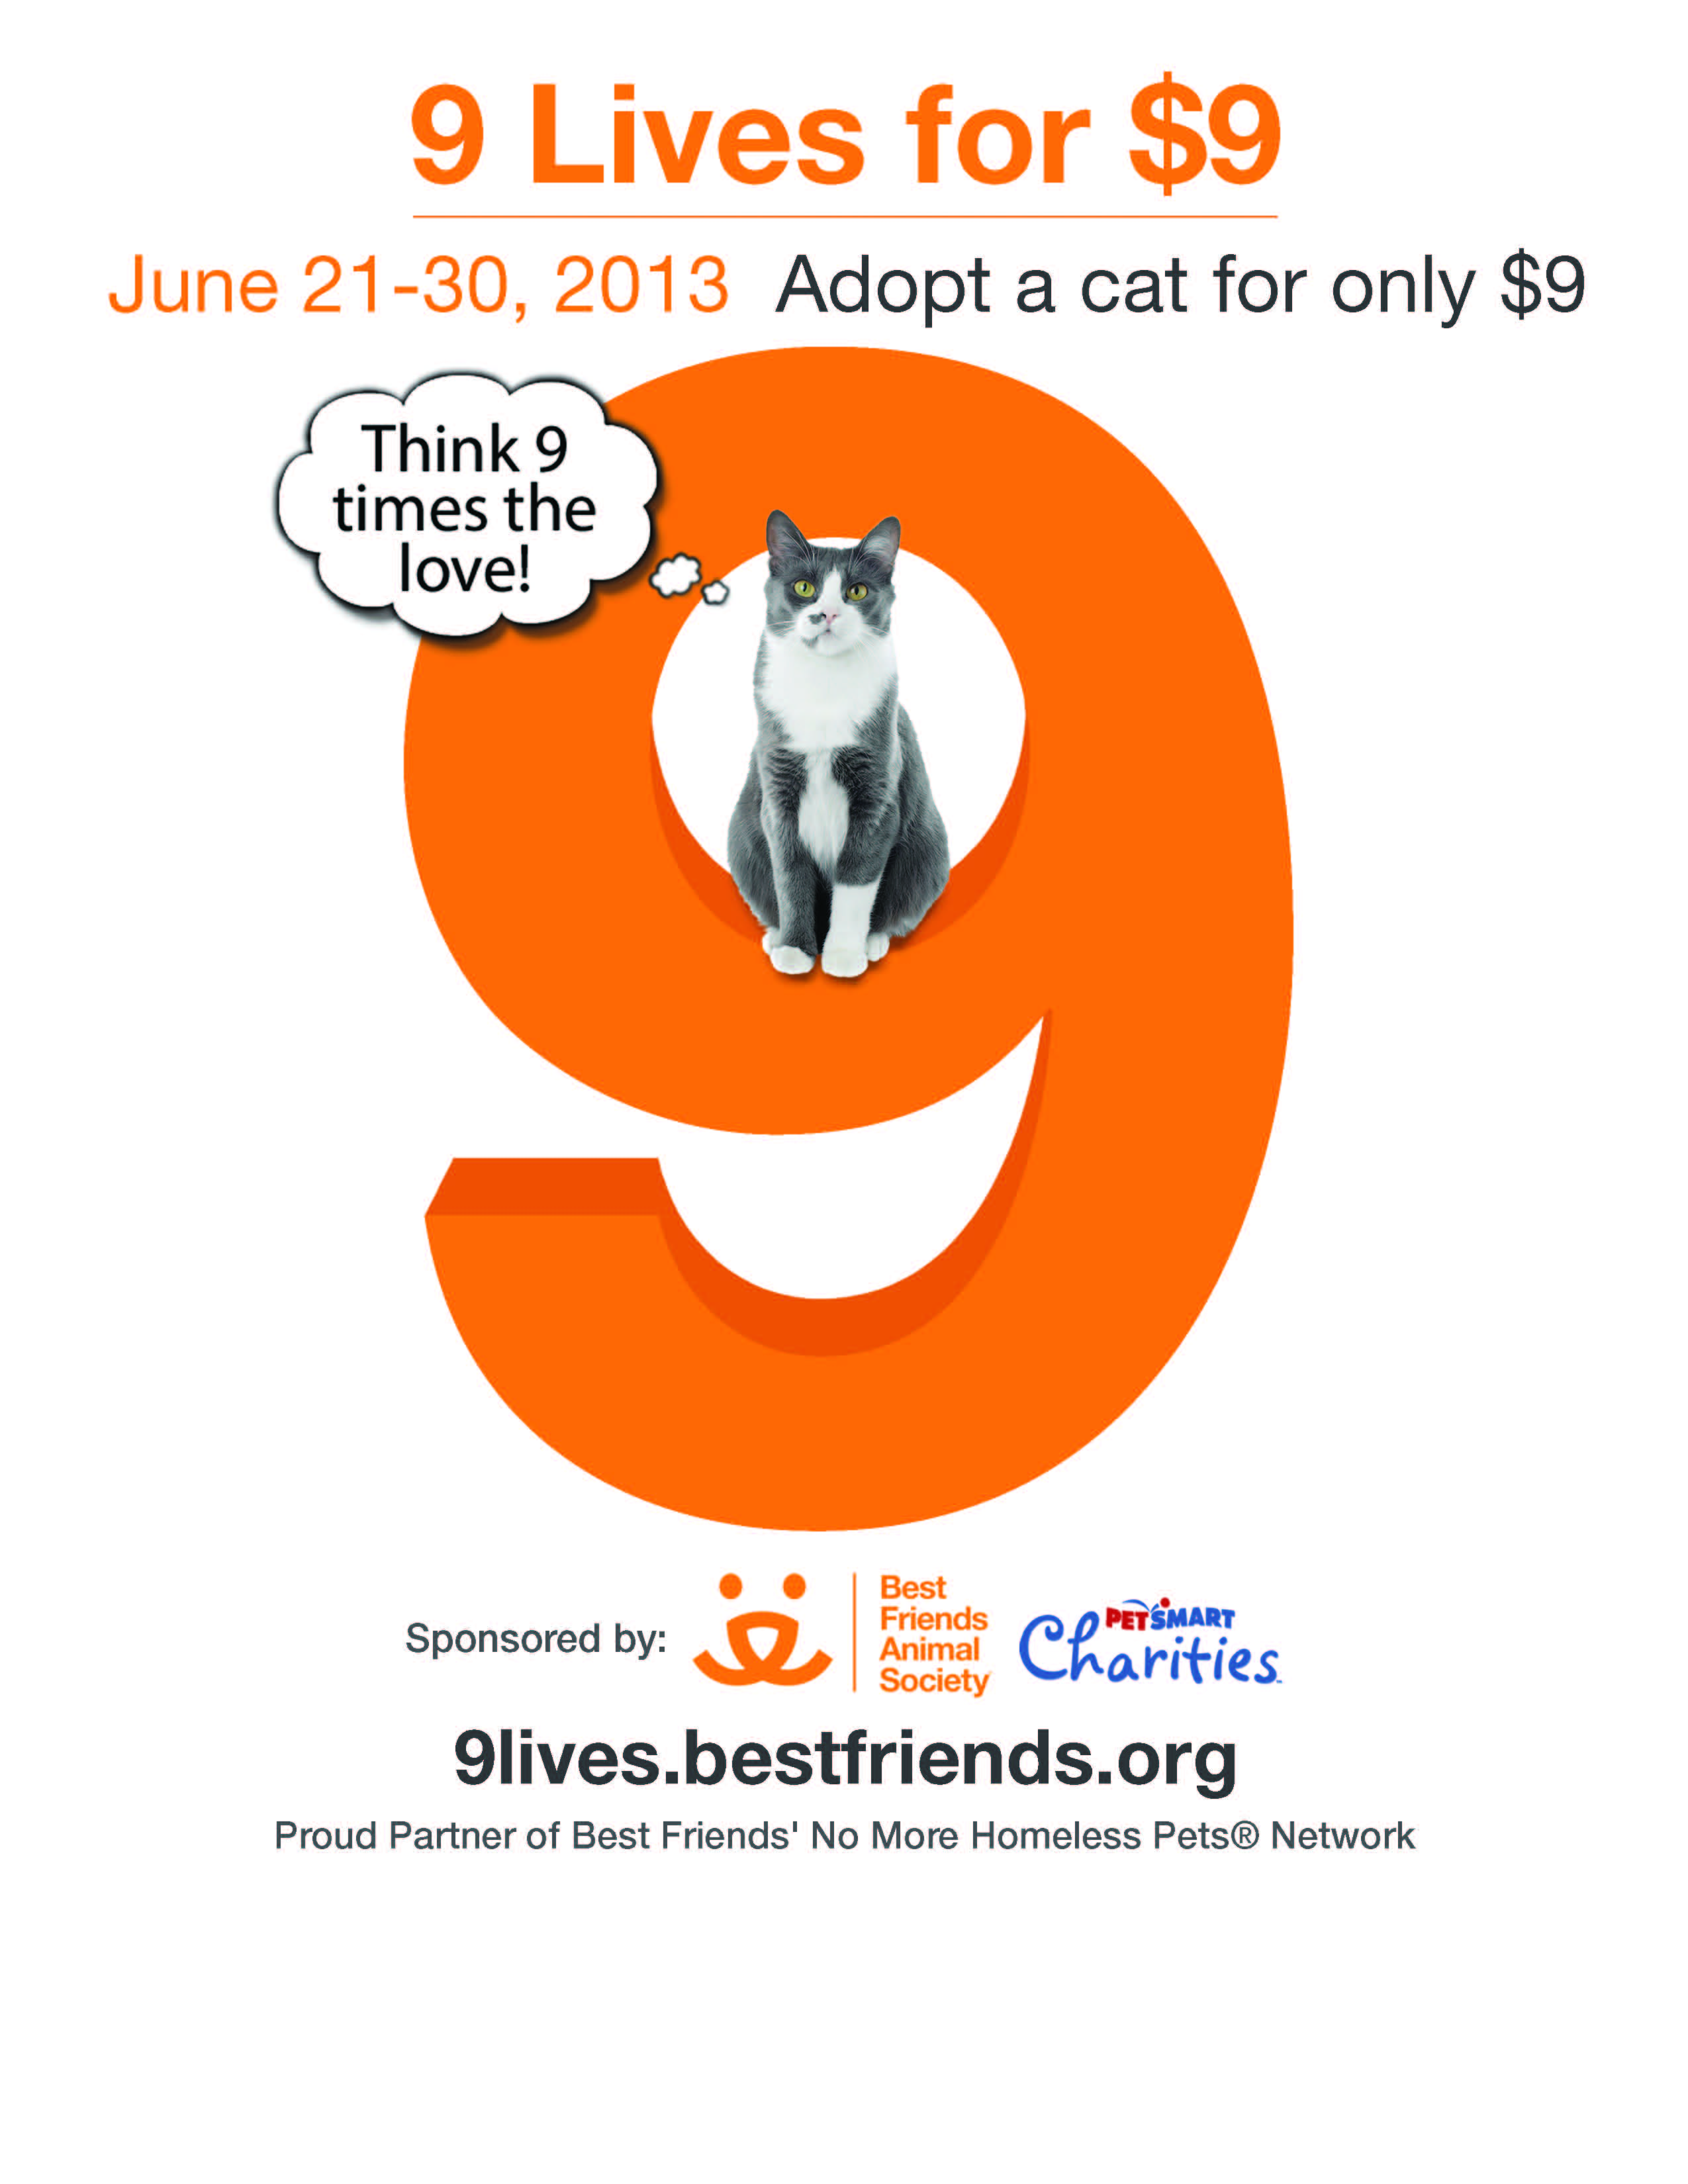 9 Best Selling Crochet Items For A Warm Weather Craft Fair: '9 Lives For $9' Cat Adoption Promotion June 21-30: Best